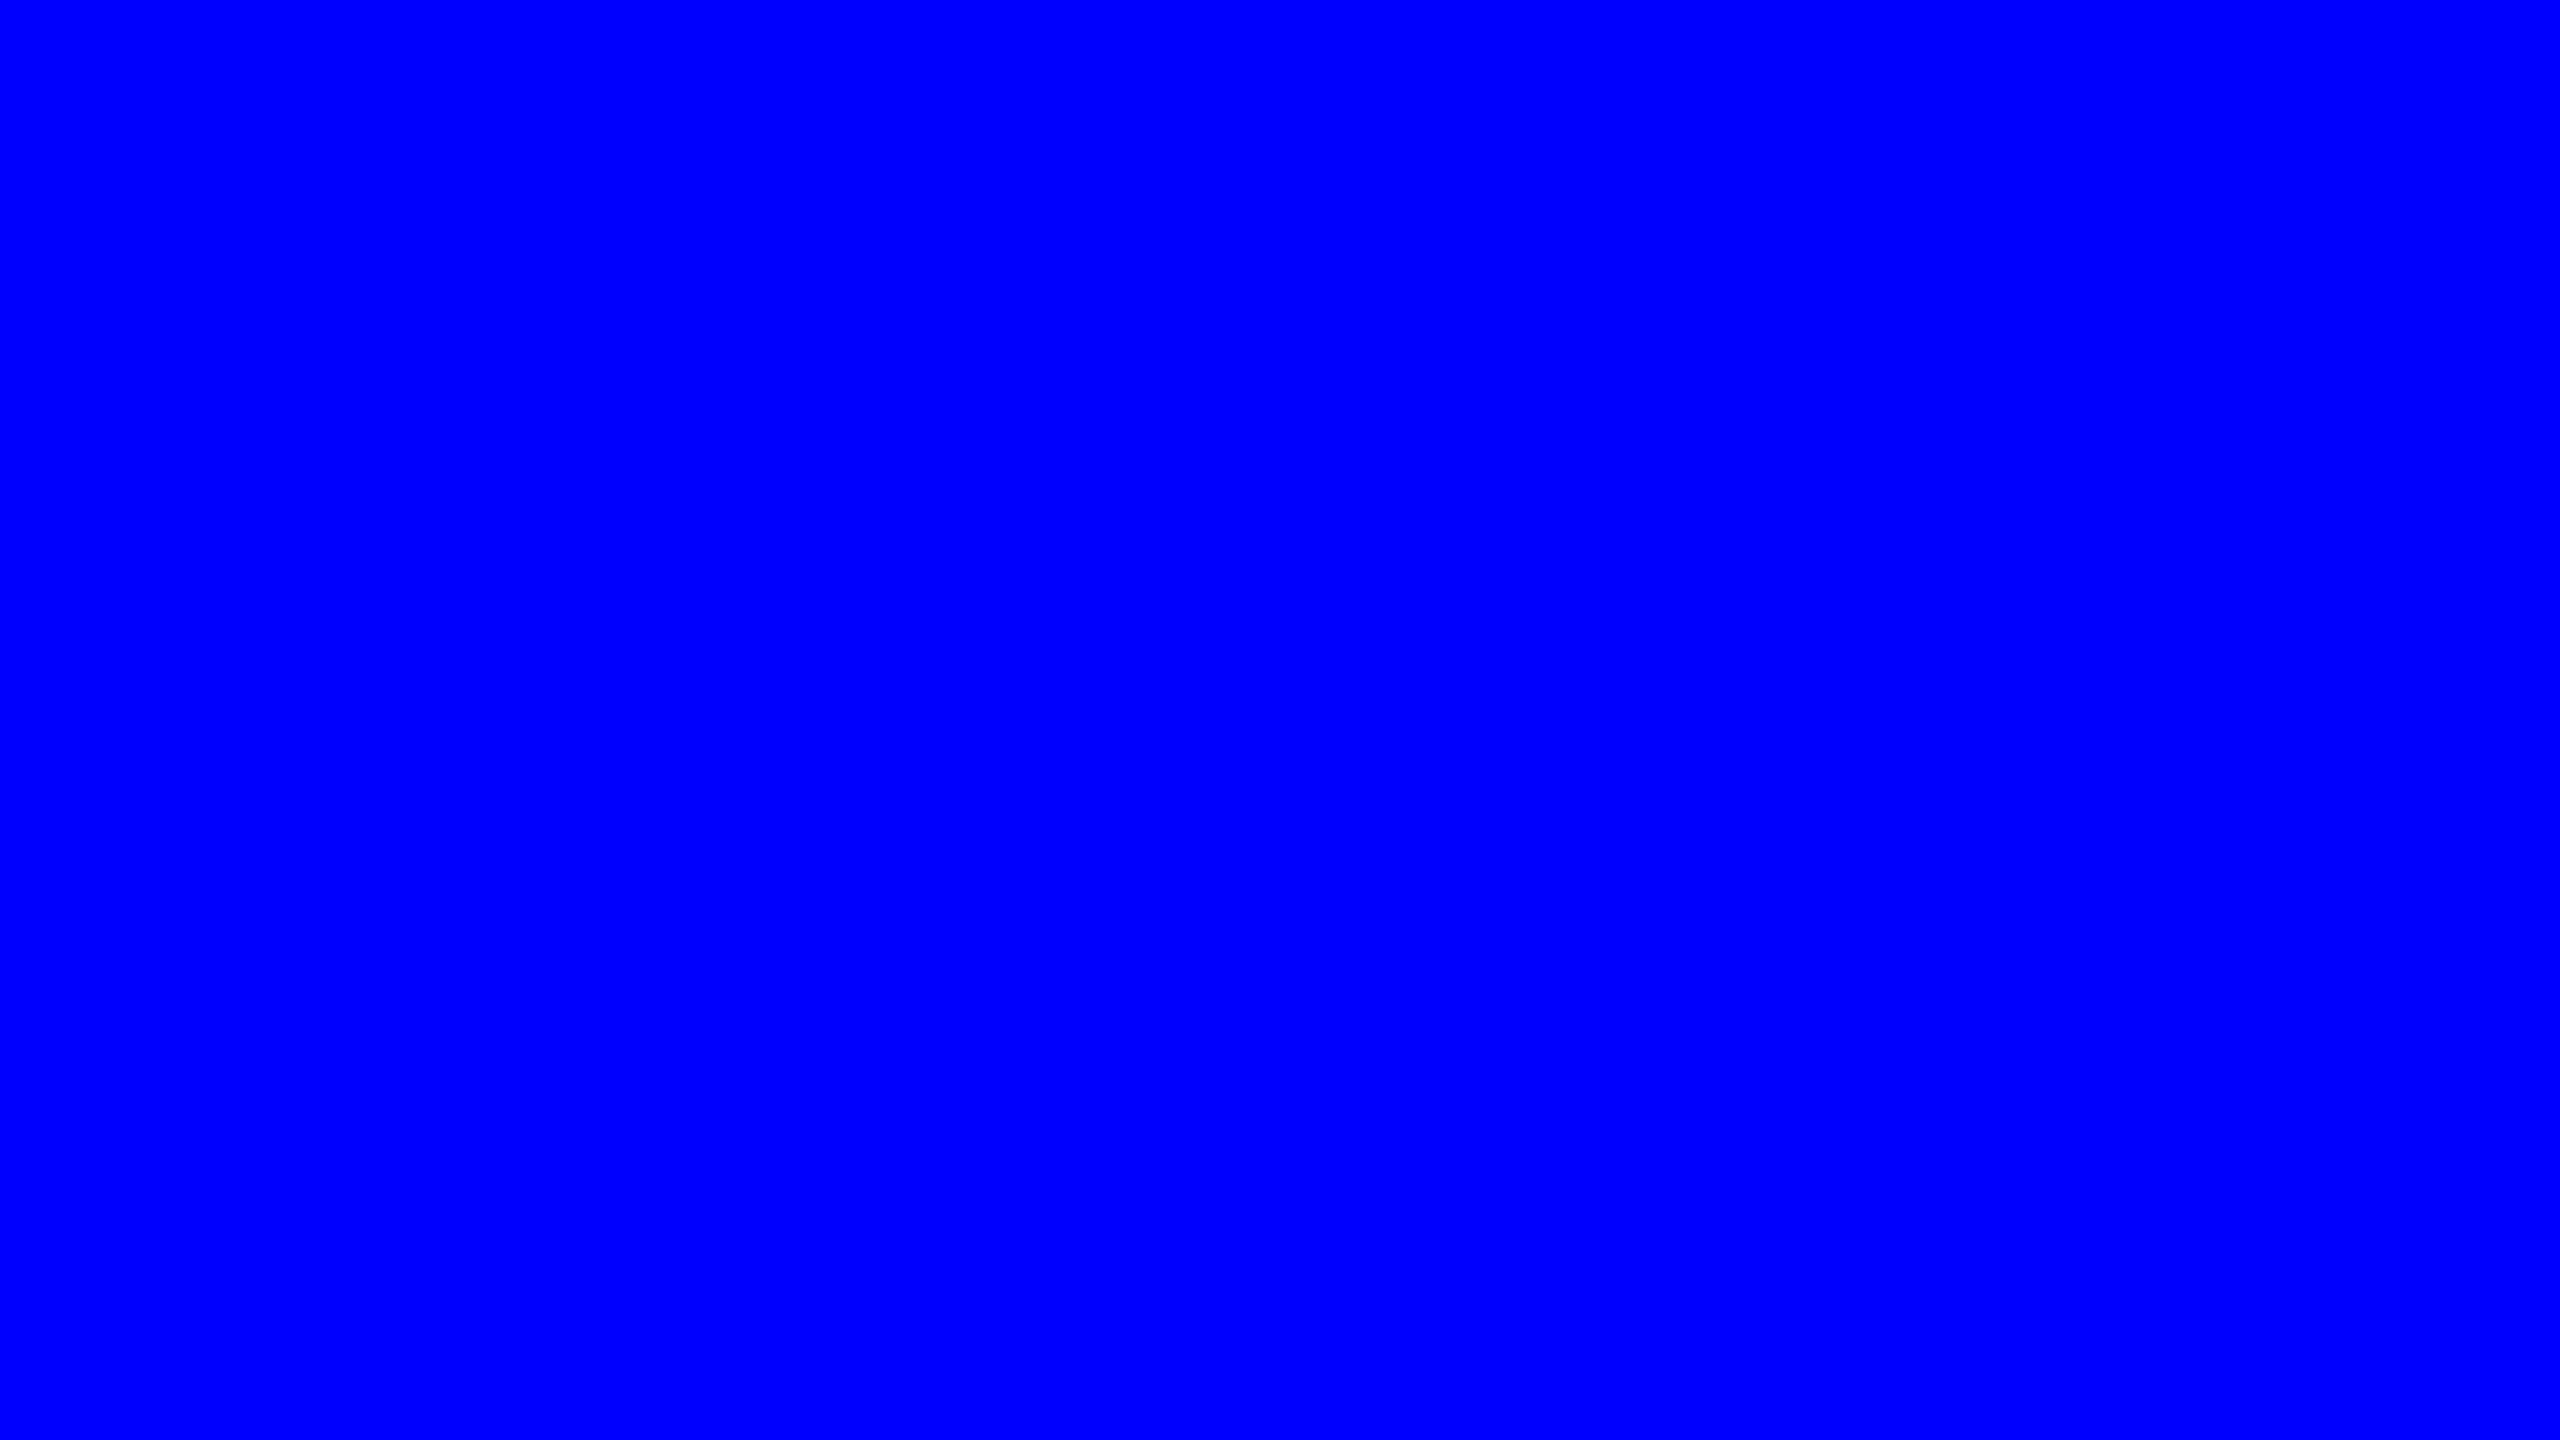 2560x1440 Blue Solid Color Background